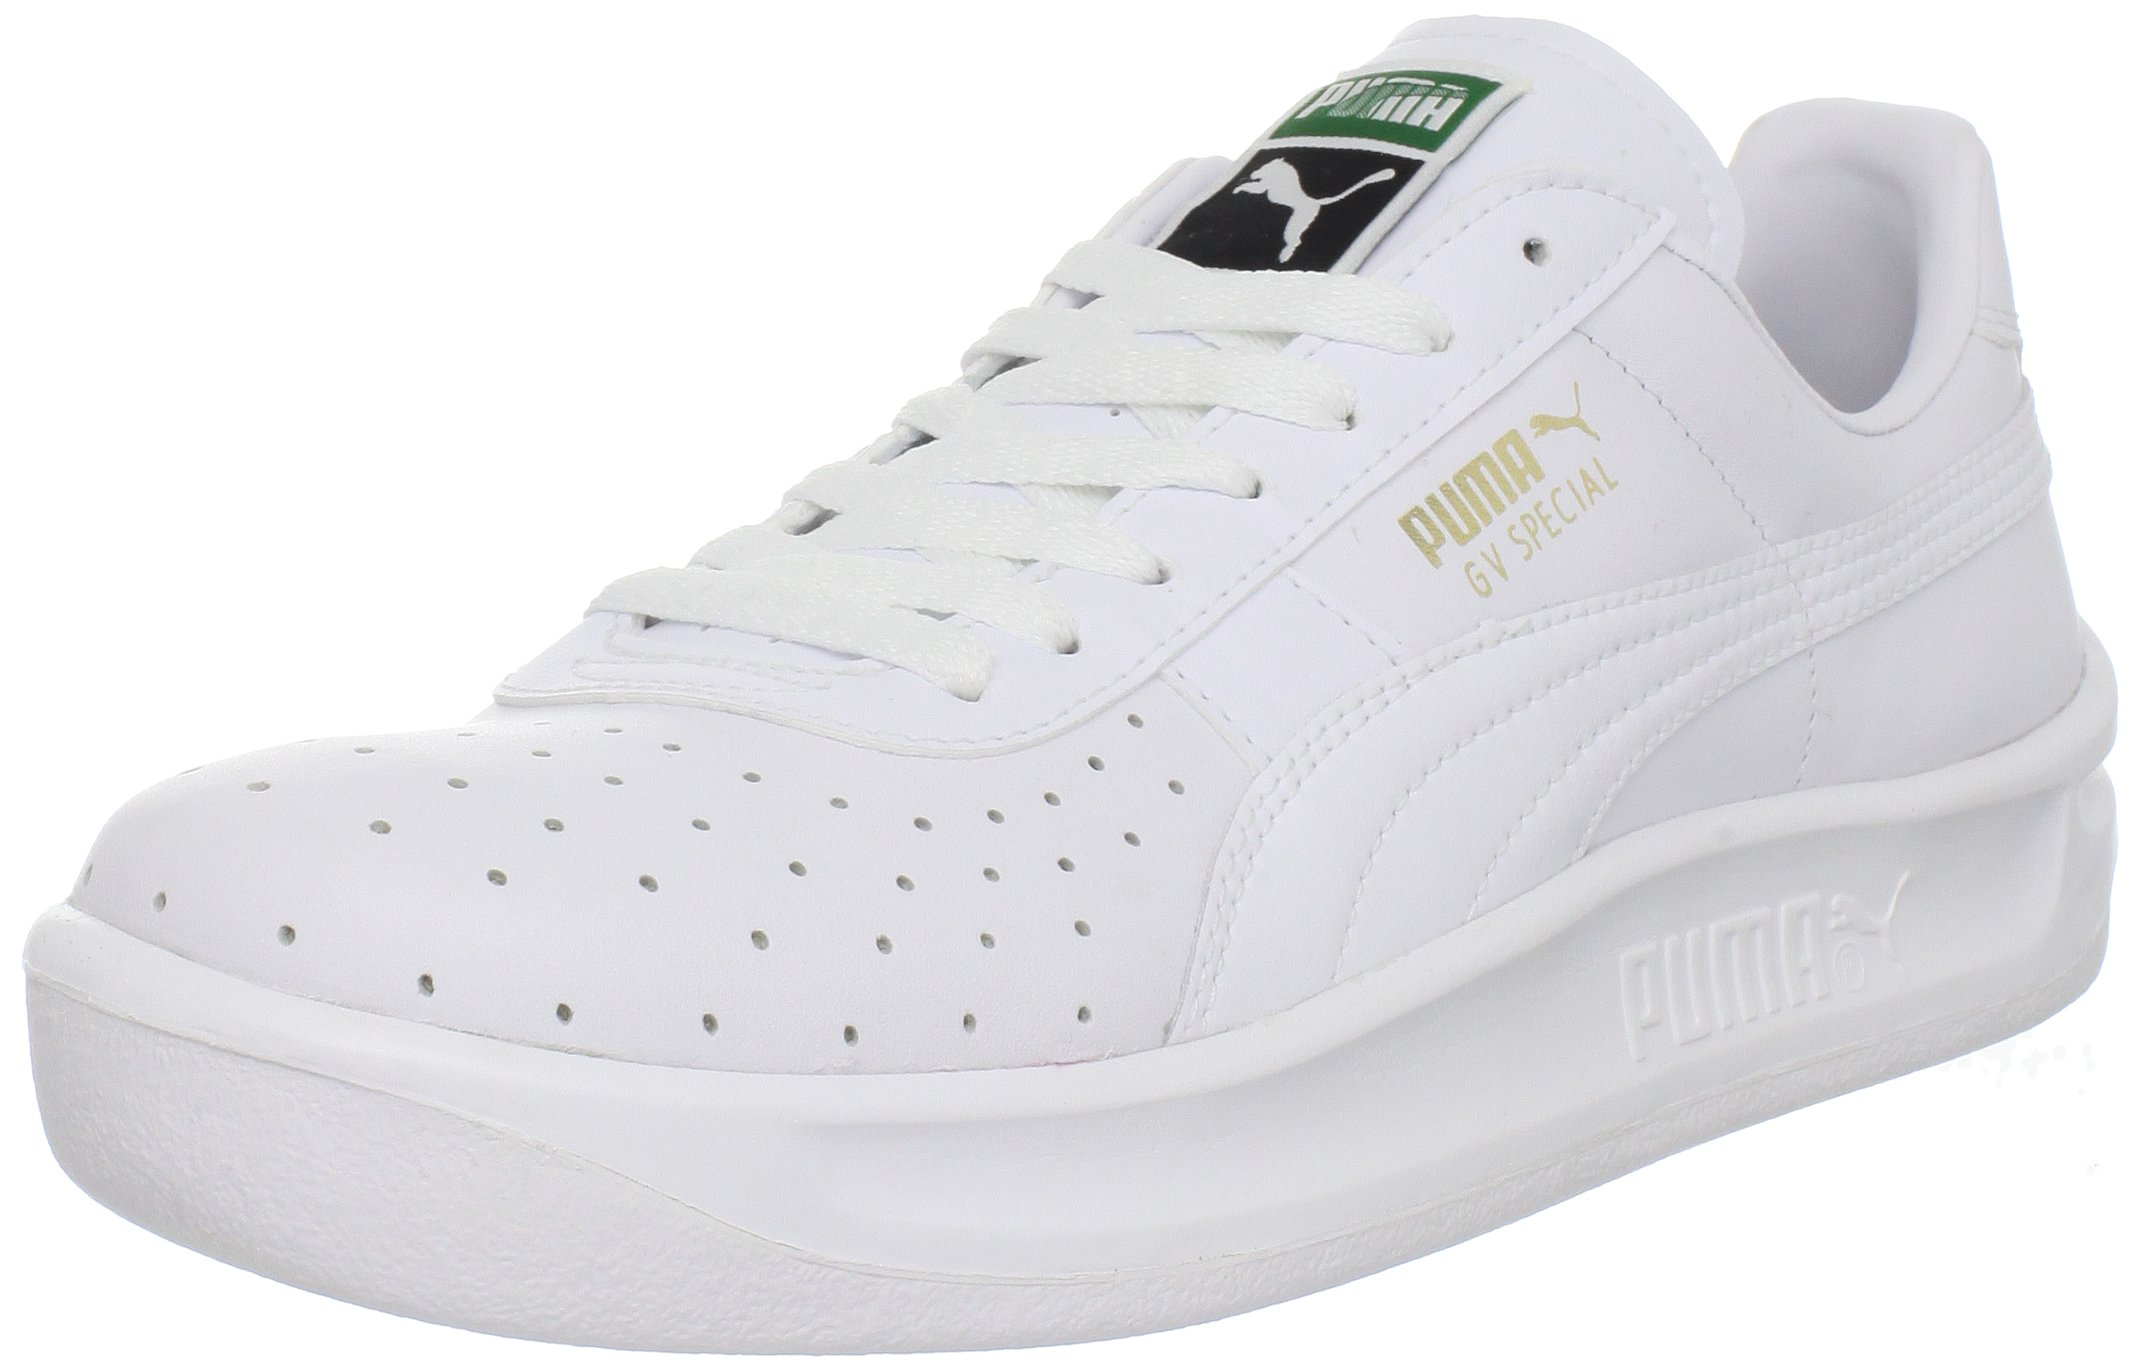 PUMA Men's GV Special Lace-Up Fashion Sneaker, White/White, 11 M US by PUMA